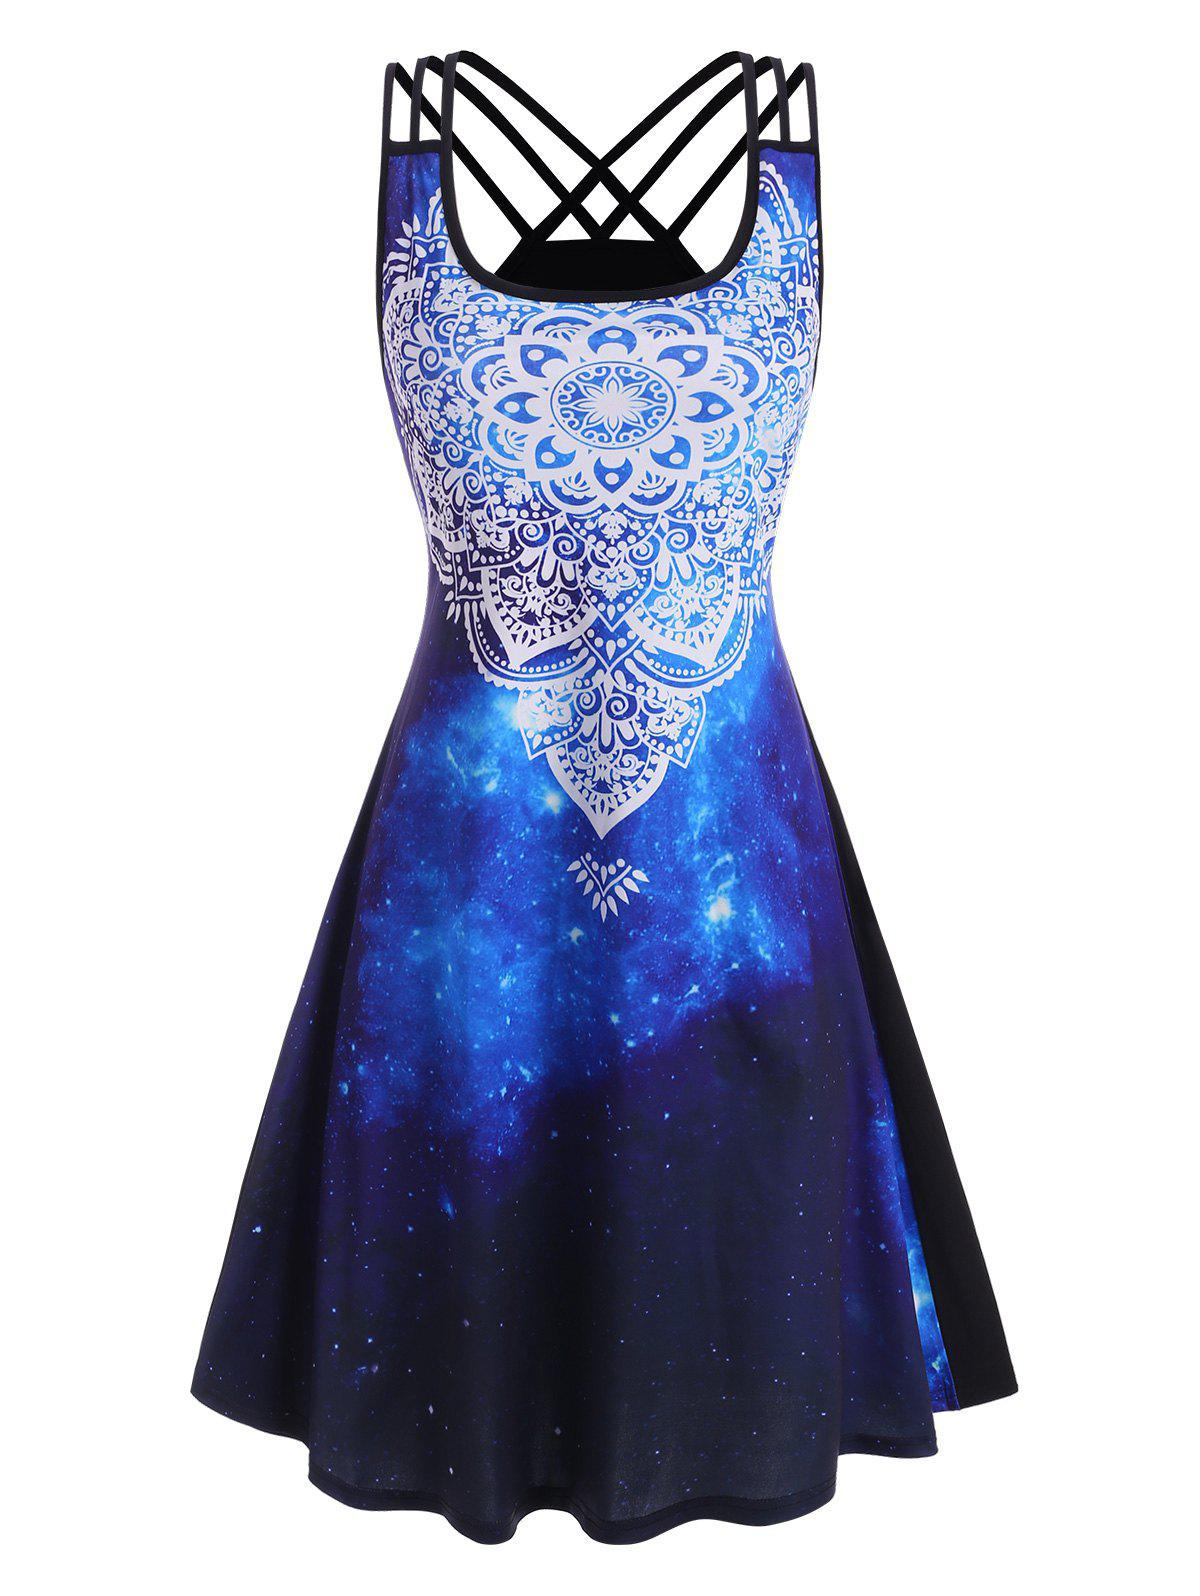 Strappy Back Splatter Paint Galaxy Printed Dress - DEEP BLUE L